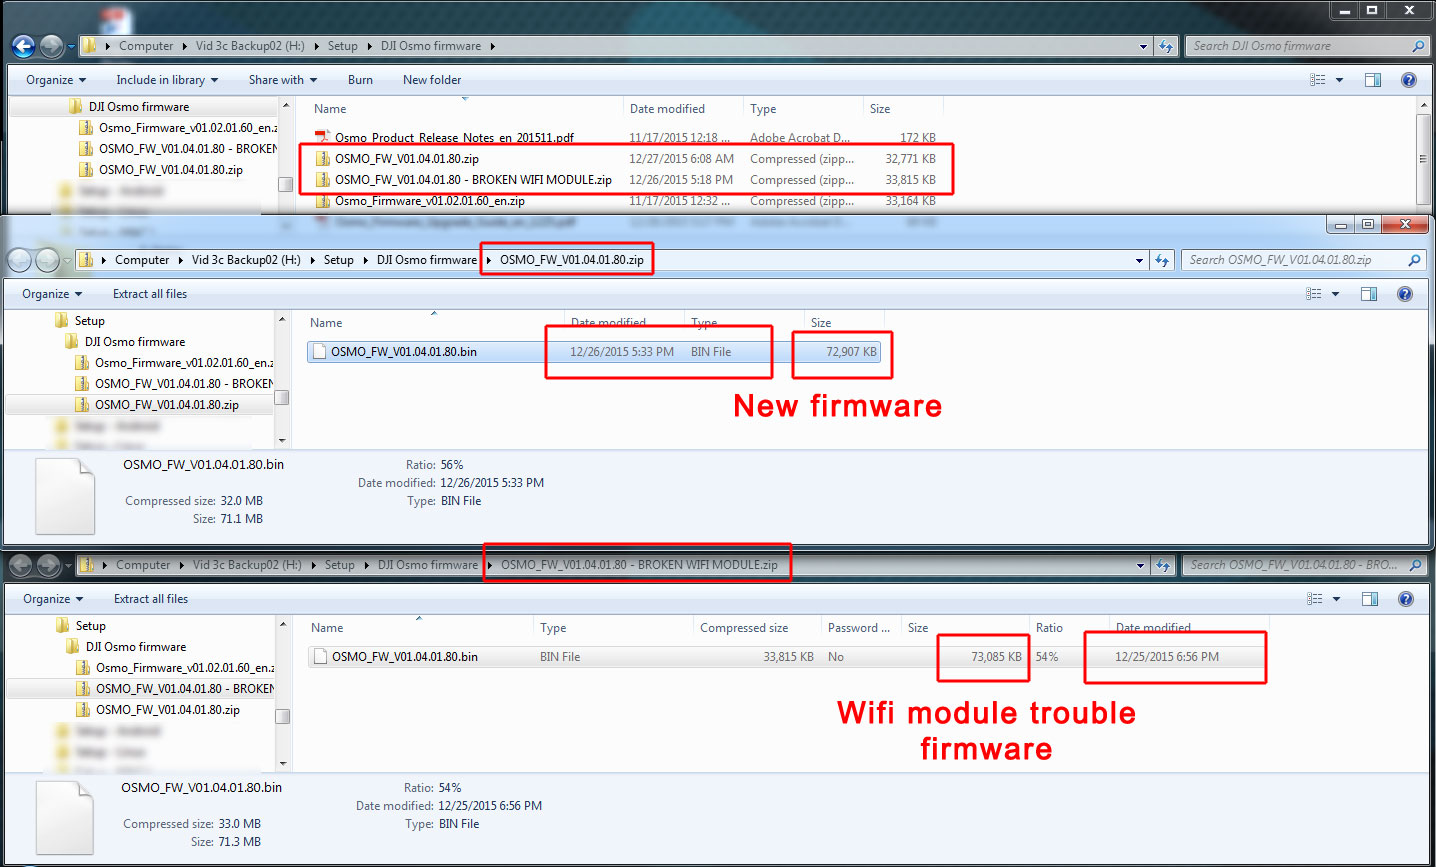 DJIOsmoFirmware-01-04-01-80-differences.jpg